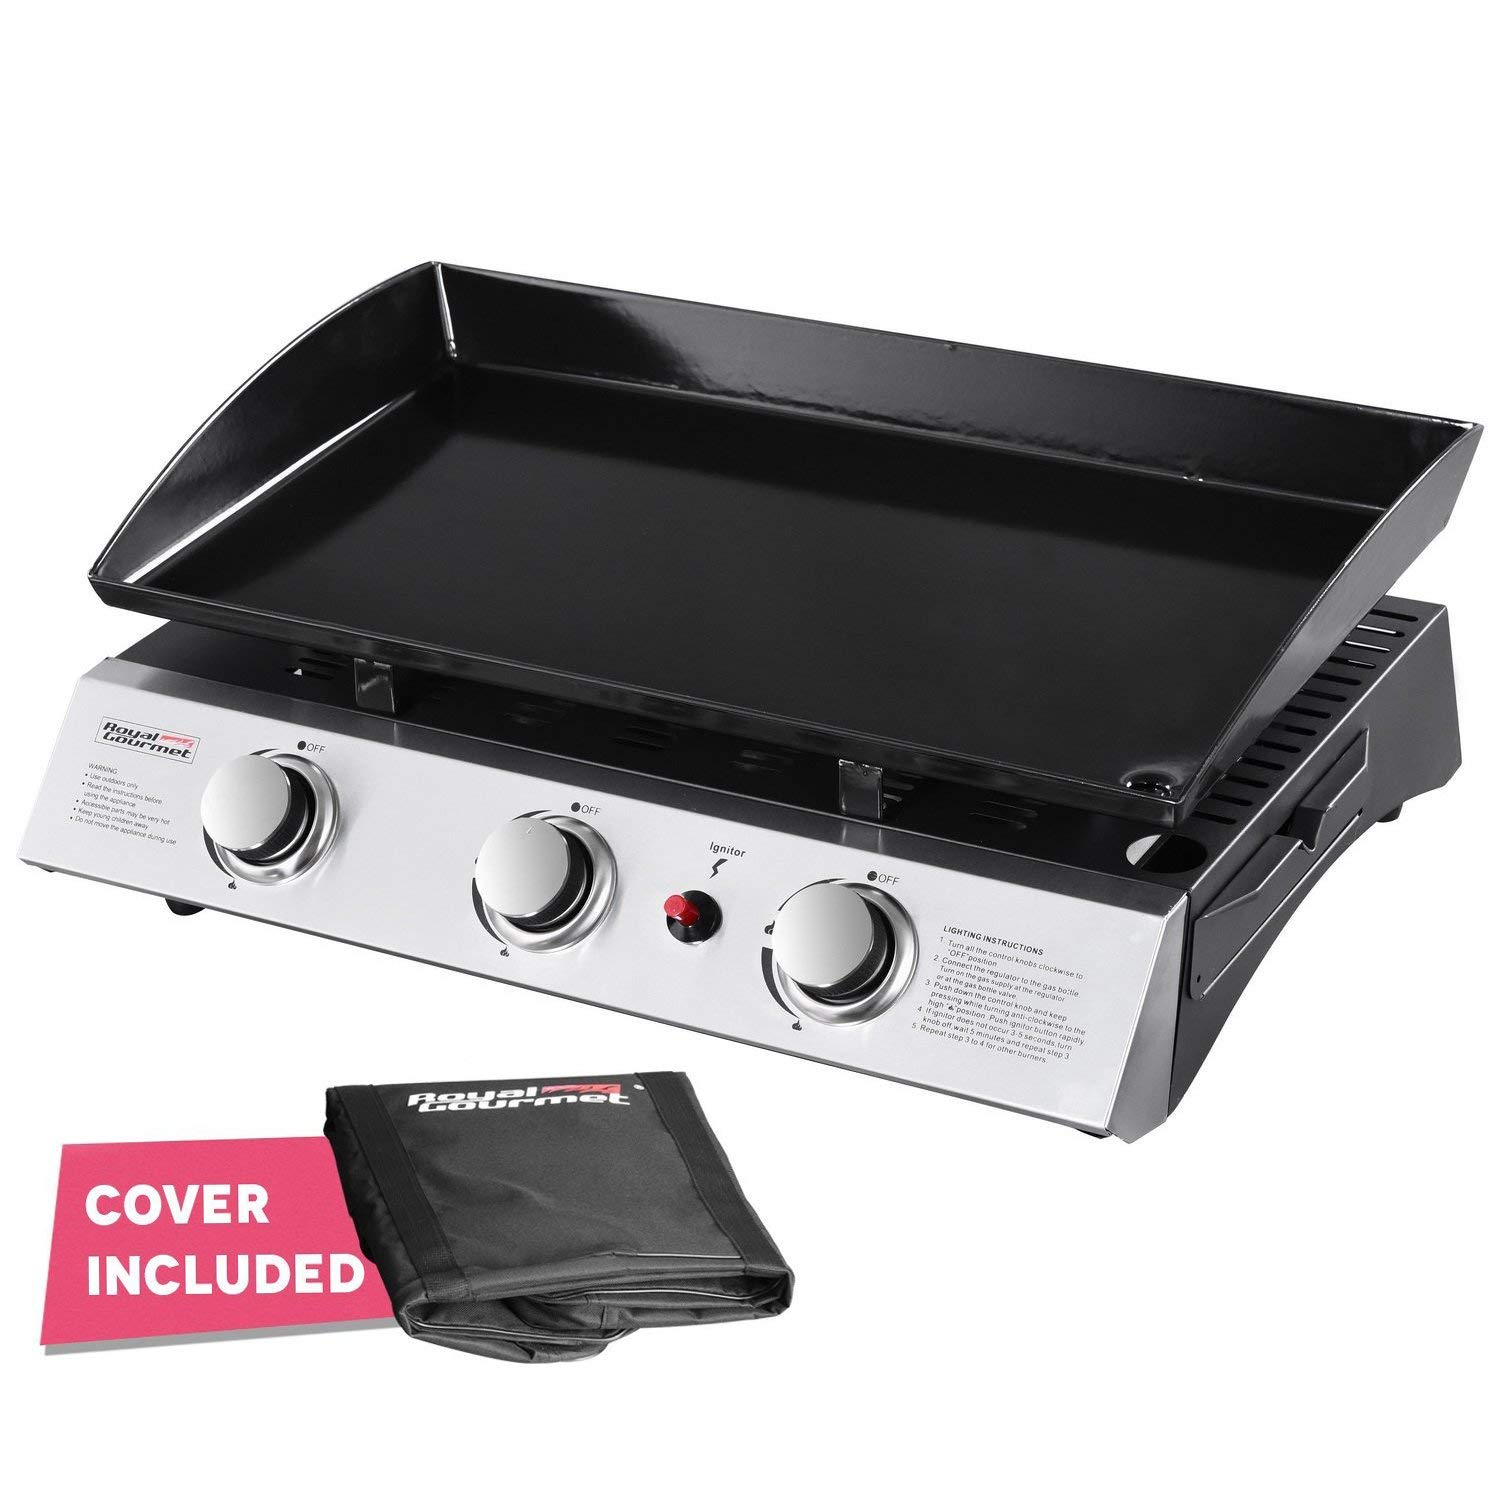 Royal Gourmet PD1300 Portable 3-Burner Propane Gas Grill Griddle by Royal Gourmet